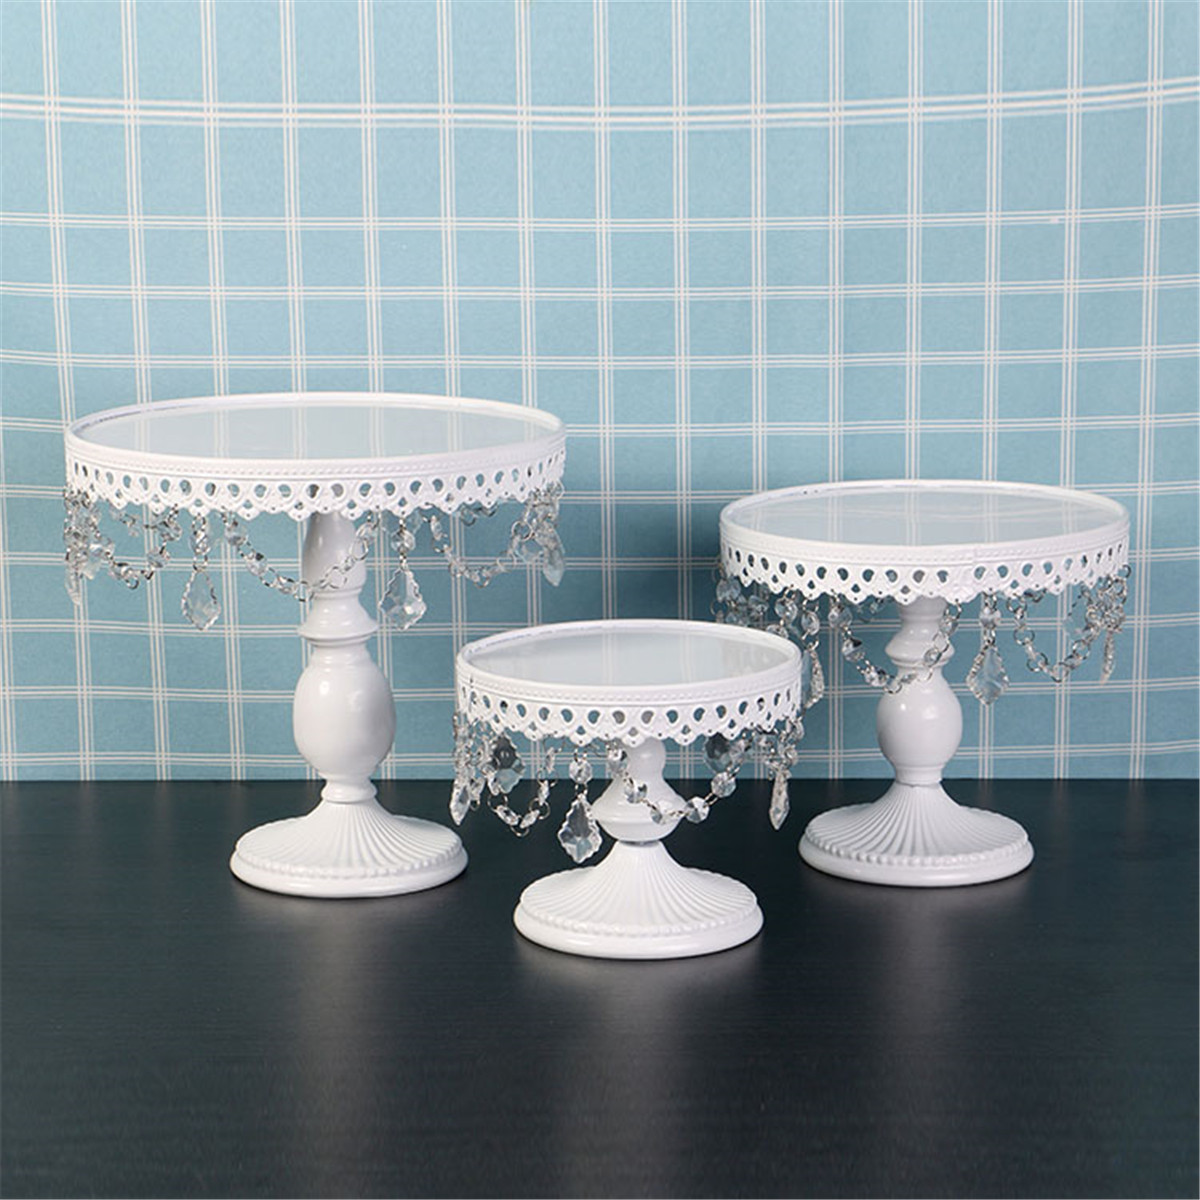 S/M/L Vintage Metal Cake Stand Cupcake Dessert Display Holder Tray Cake Tools Bridal Shower Birthday Party Wedding Decoration